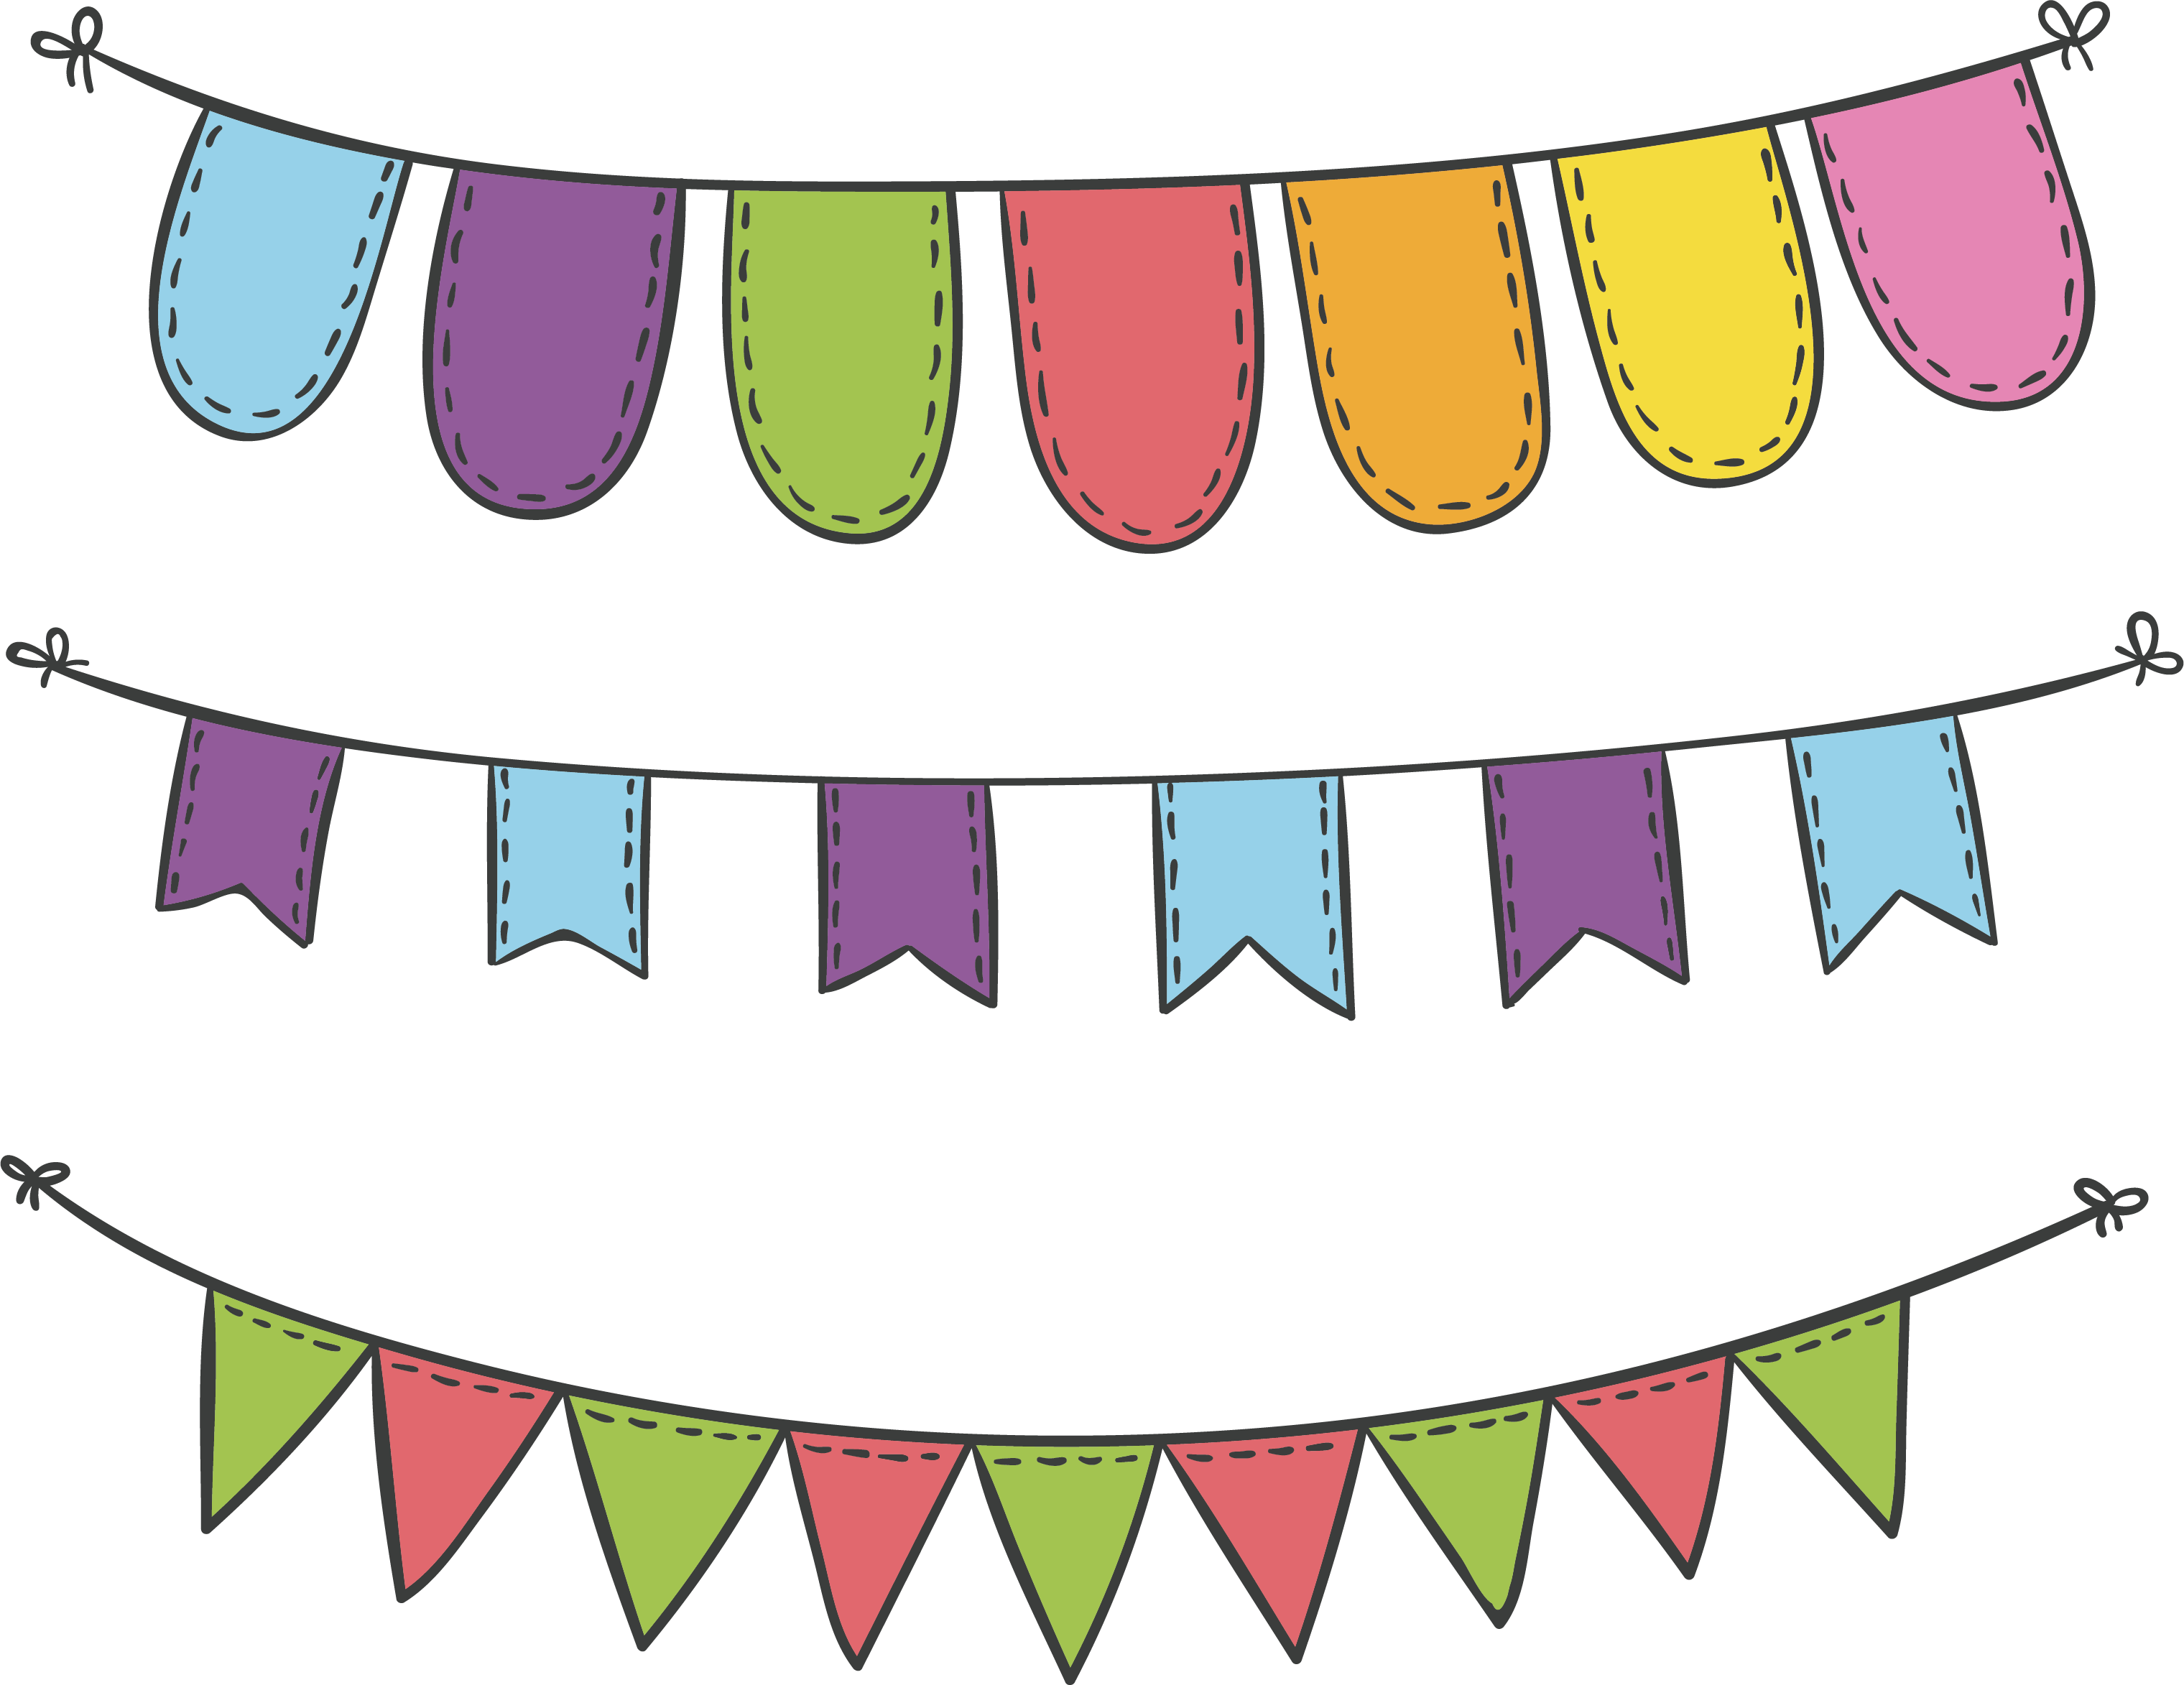 Party clipart party banner. Sky lantern flag carnival